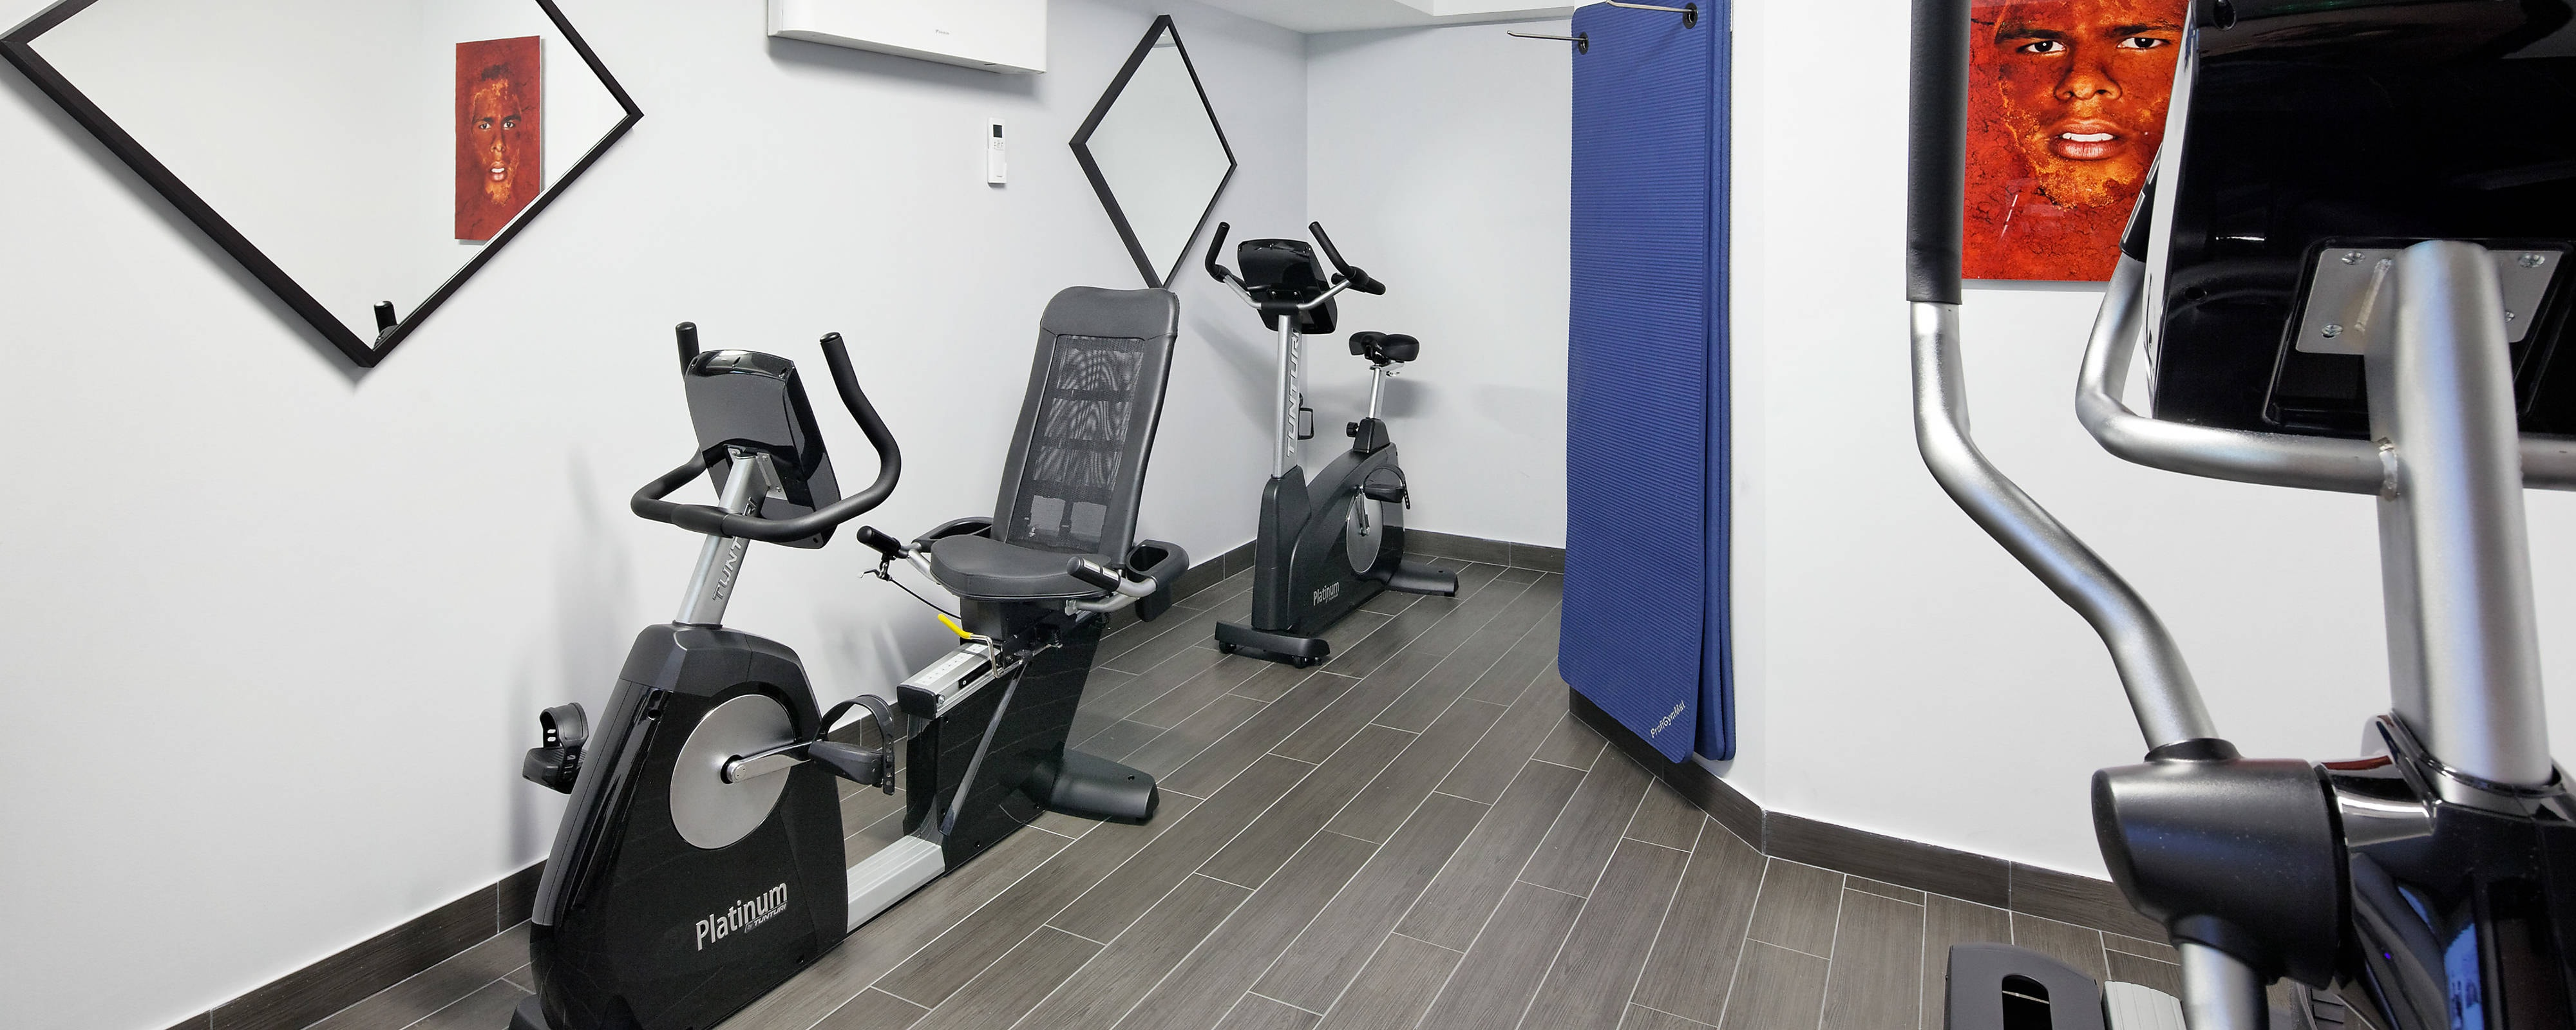 salle de sport boulogne fitness courtyard marriott paris boulogne. Black Bedroom Furniture Sets. Home Design Ideas